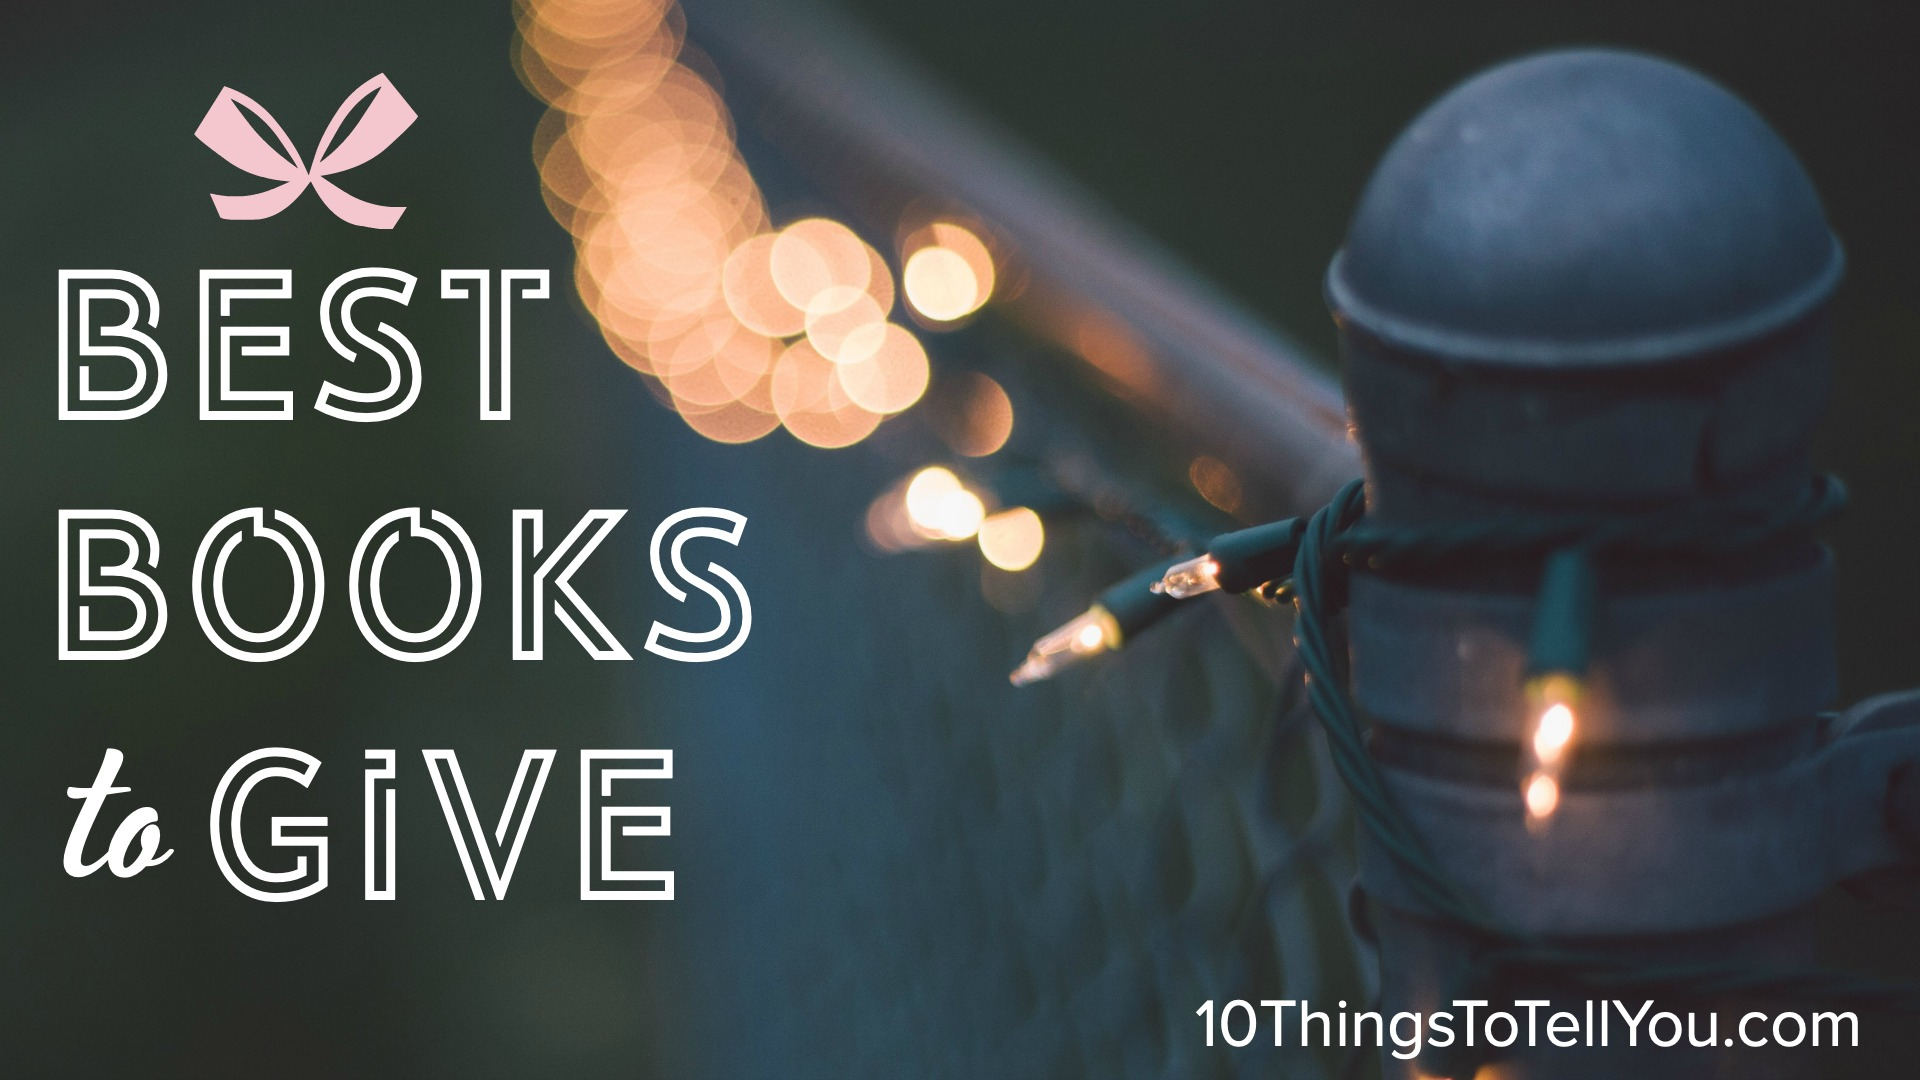 Best Books to Give 2018-2.jpg